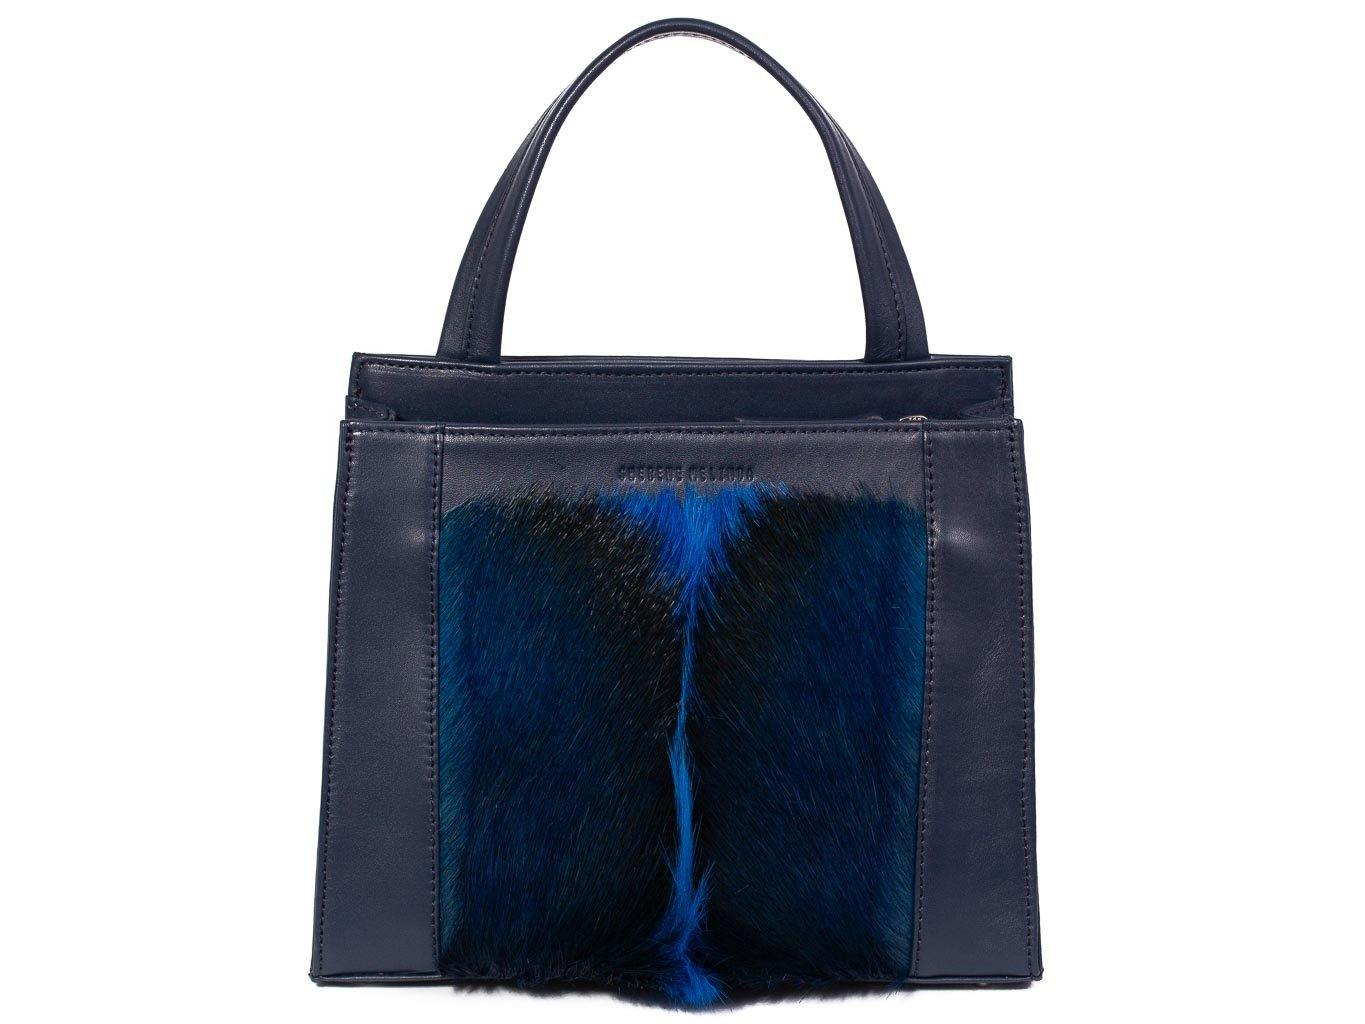 Top Handle Springbok Handbag in Navy Blue with a fan feature by Sherene Melinda front